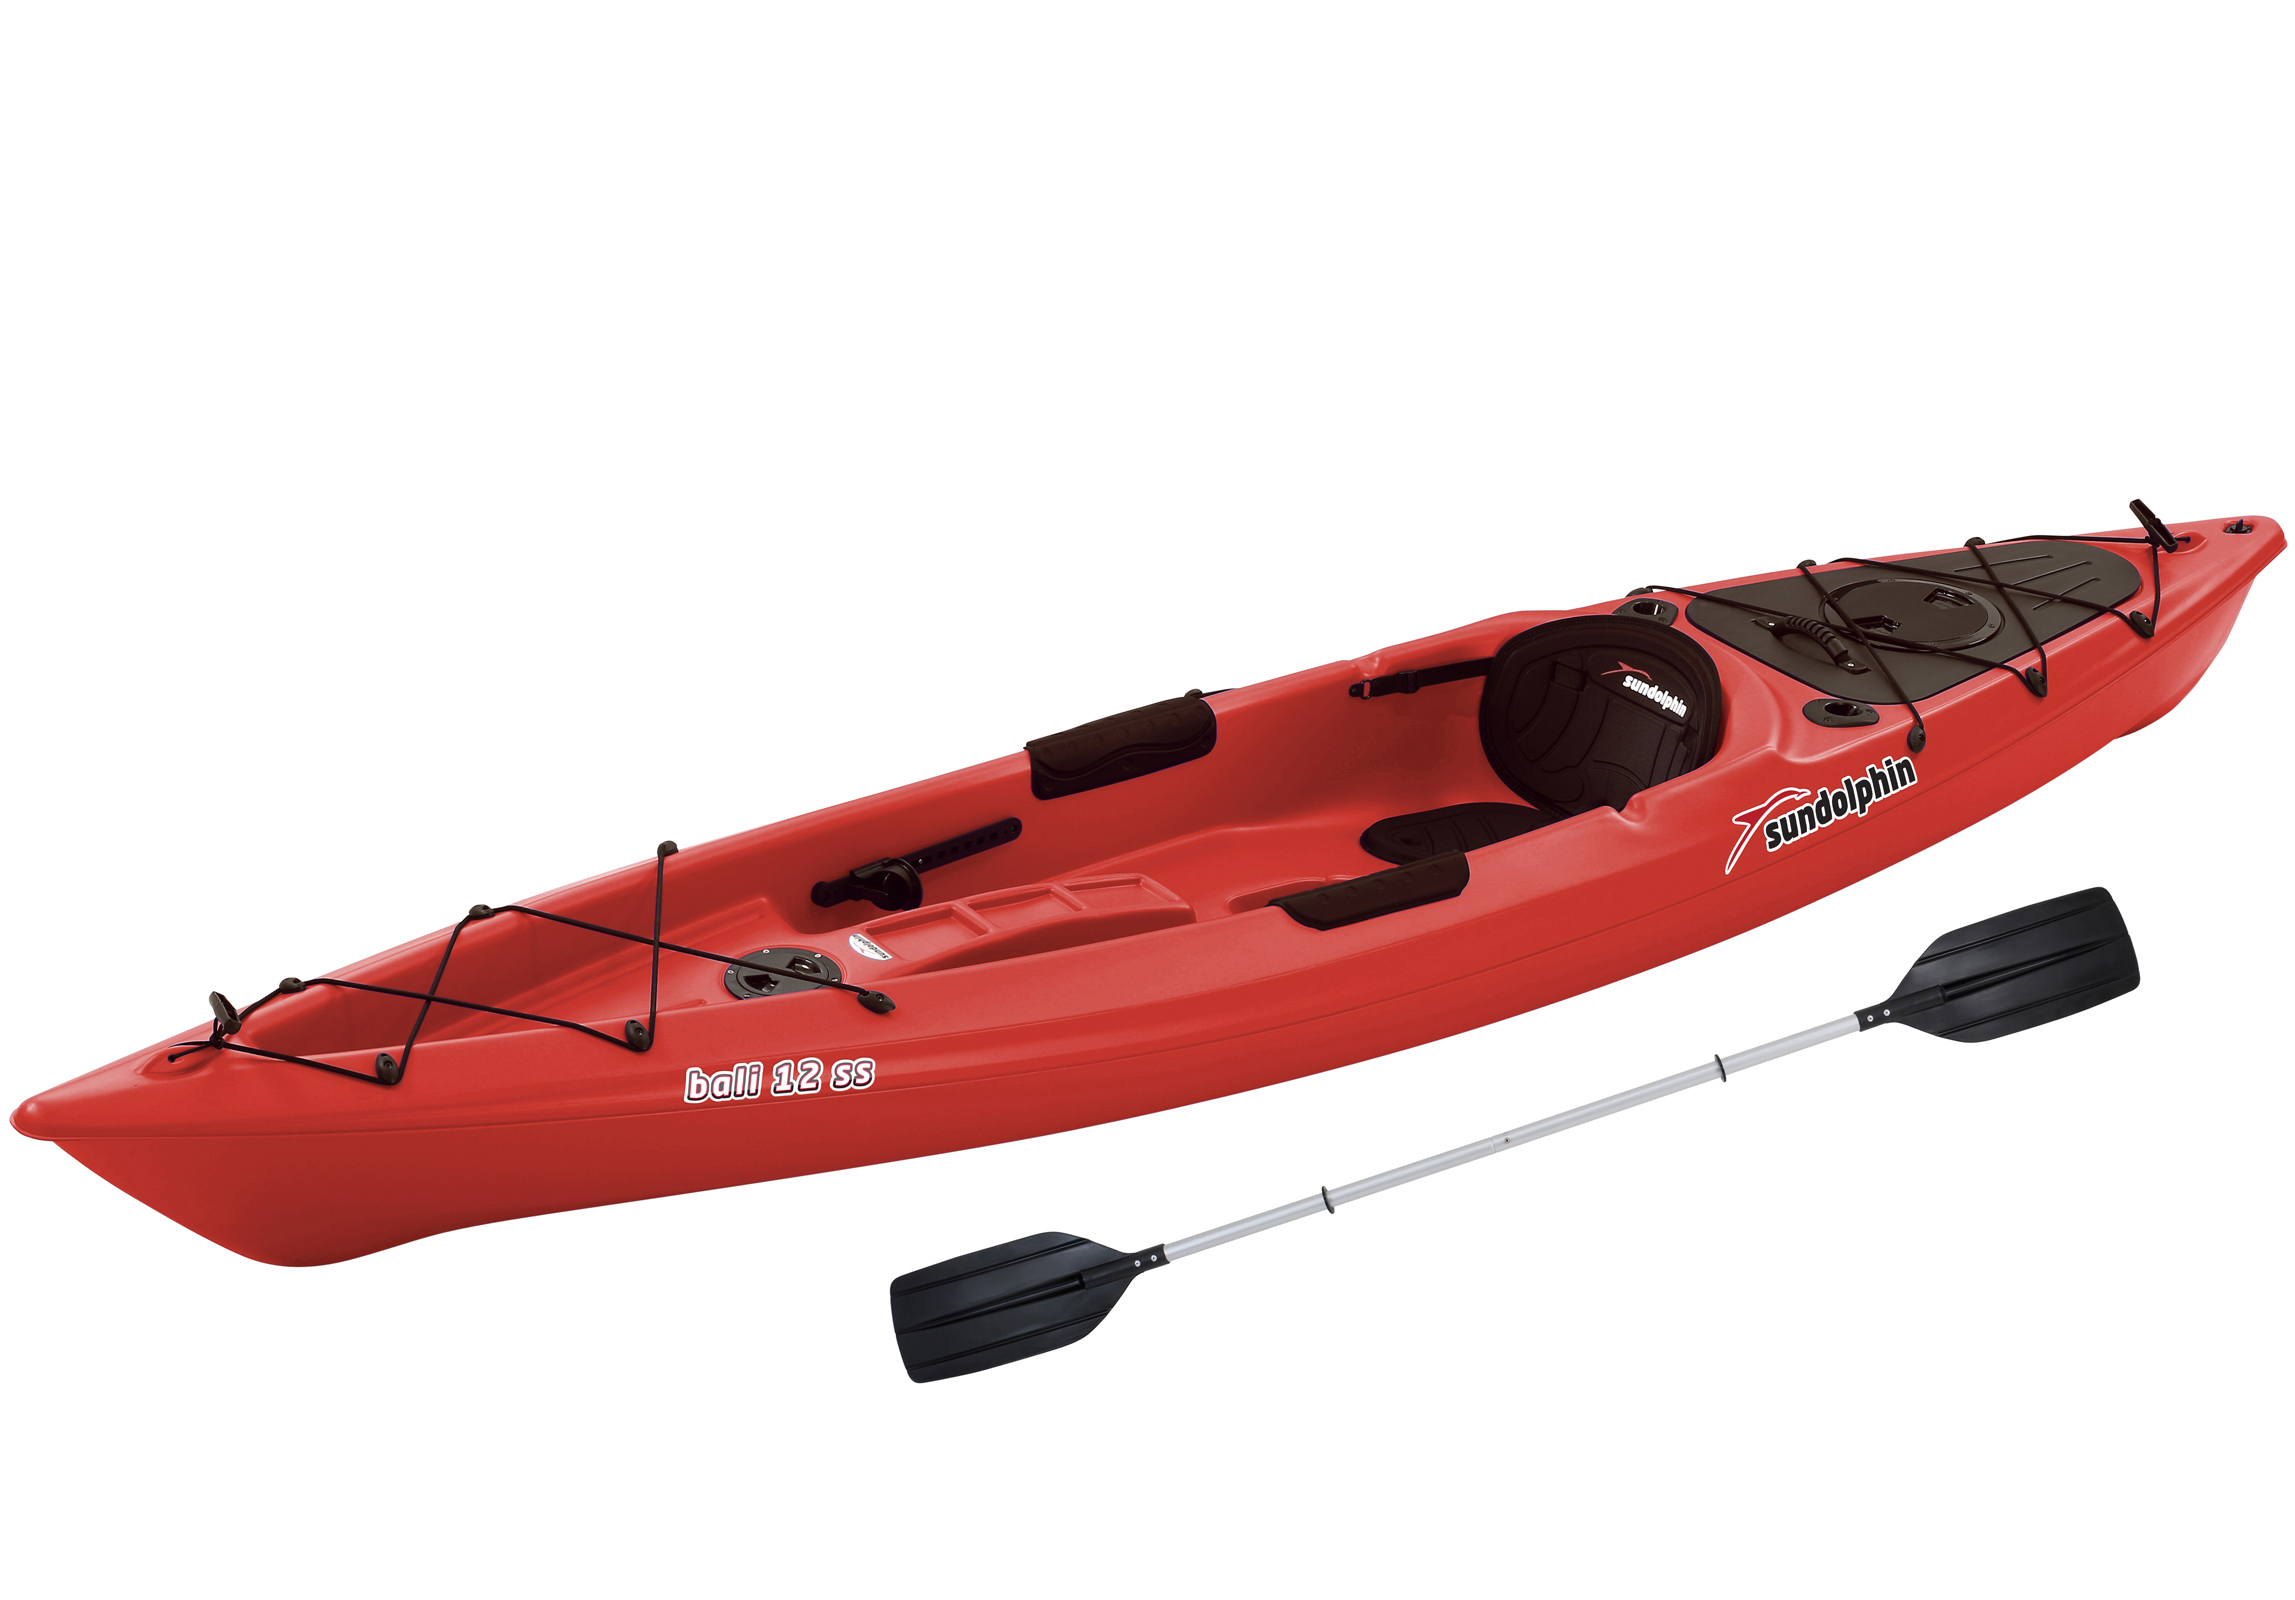 Sun Dolphin Bali Sit-On 12' Kayak, Paddle Included by KL Outdoor